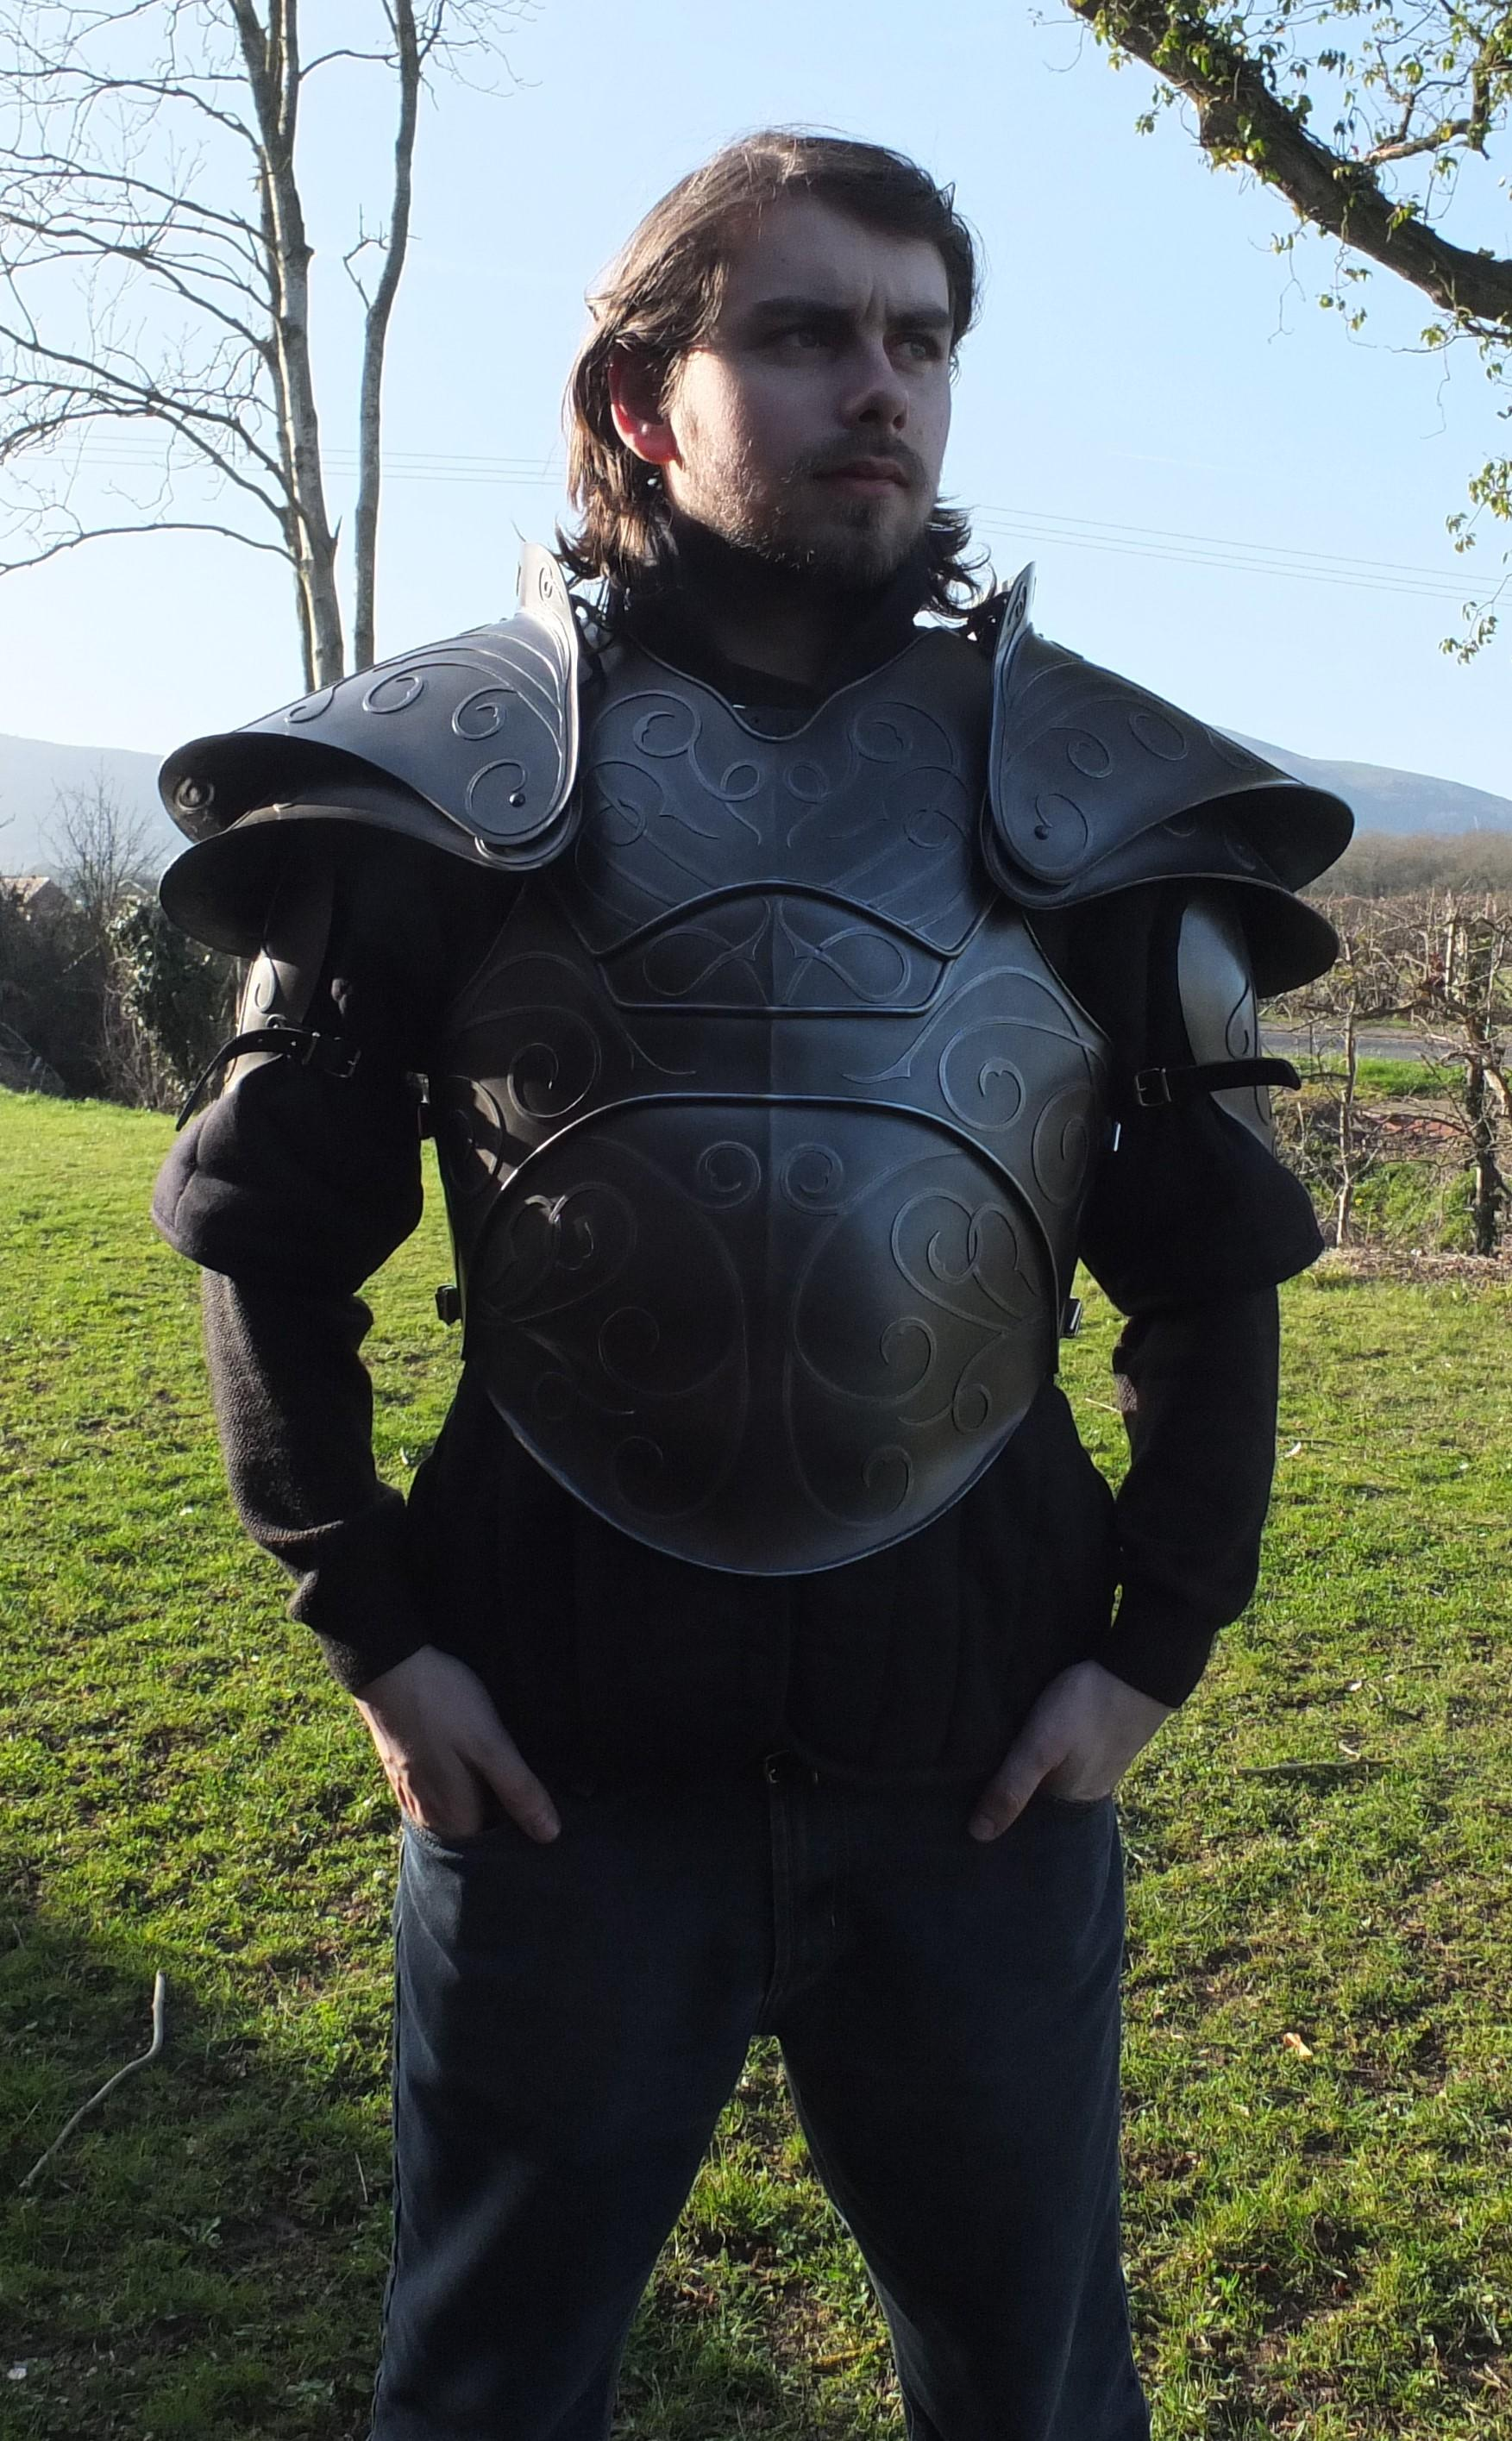 Citadel fantasy larp armour modelled